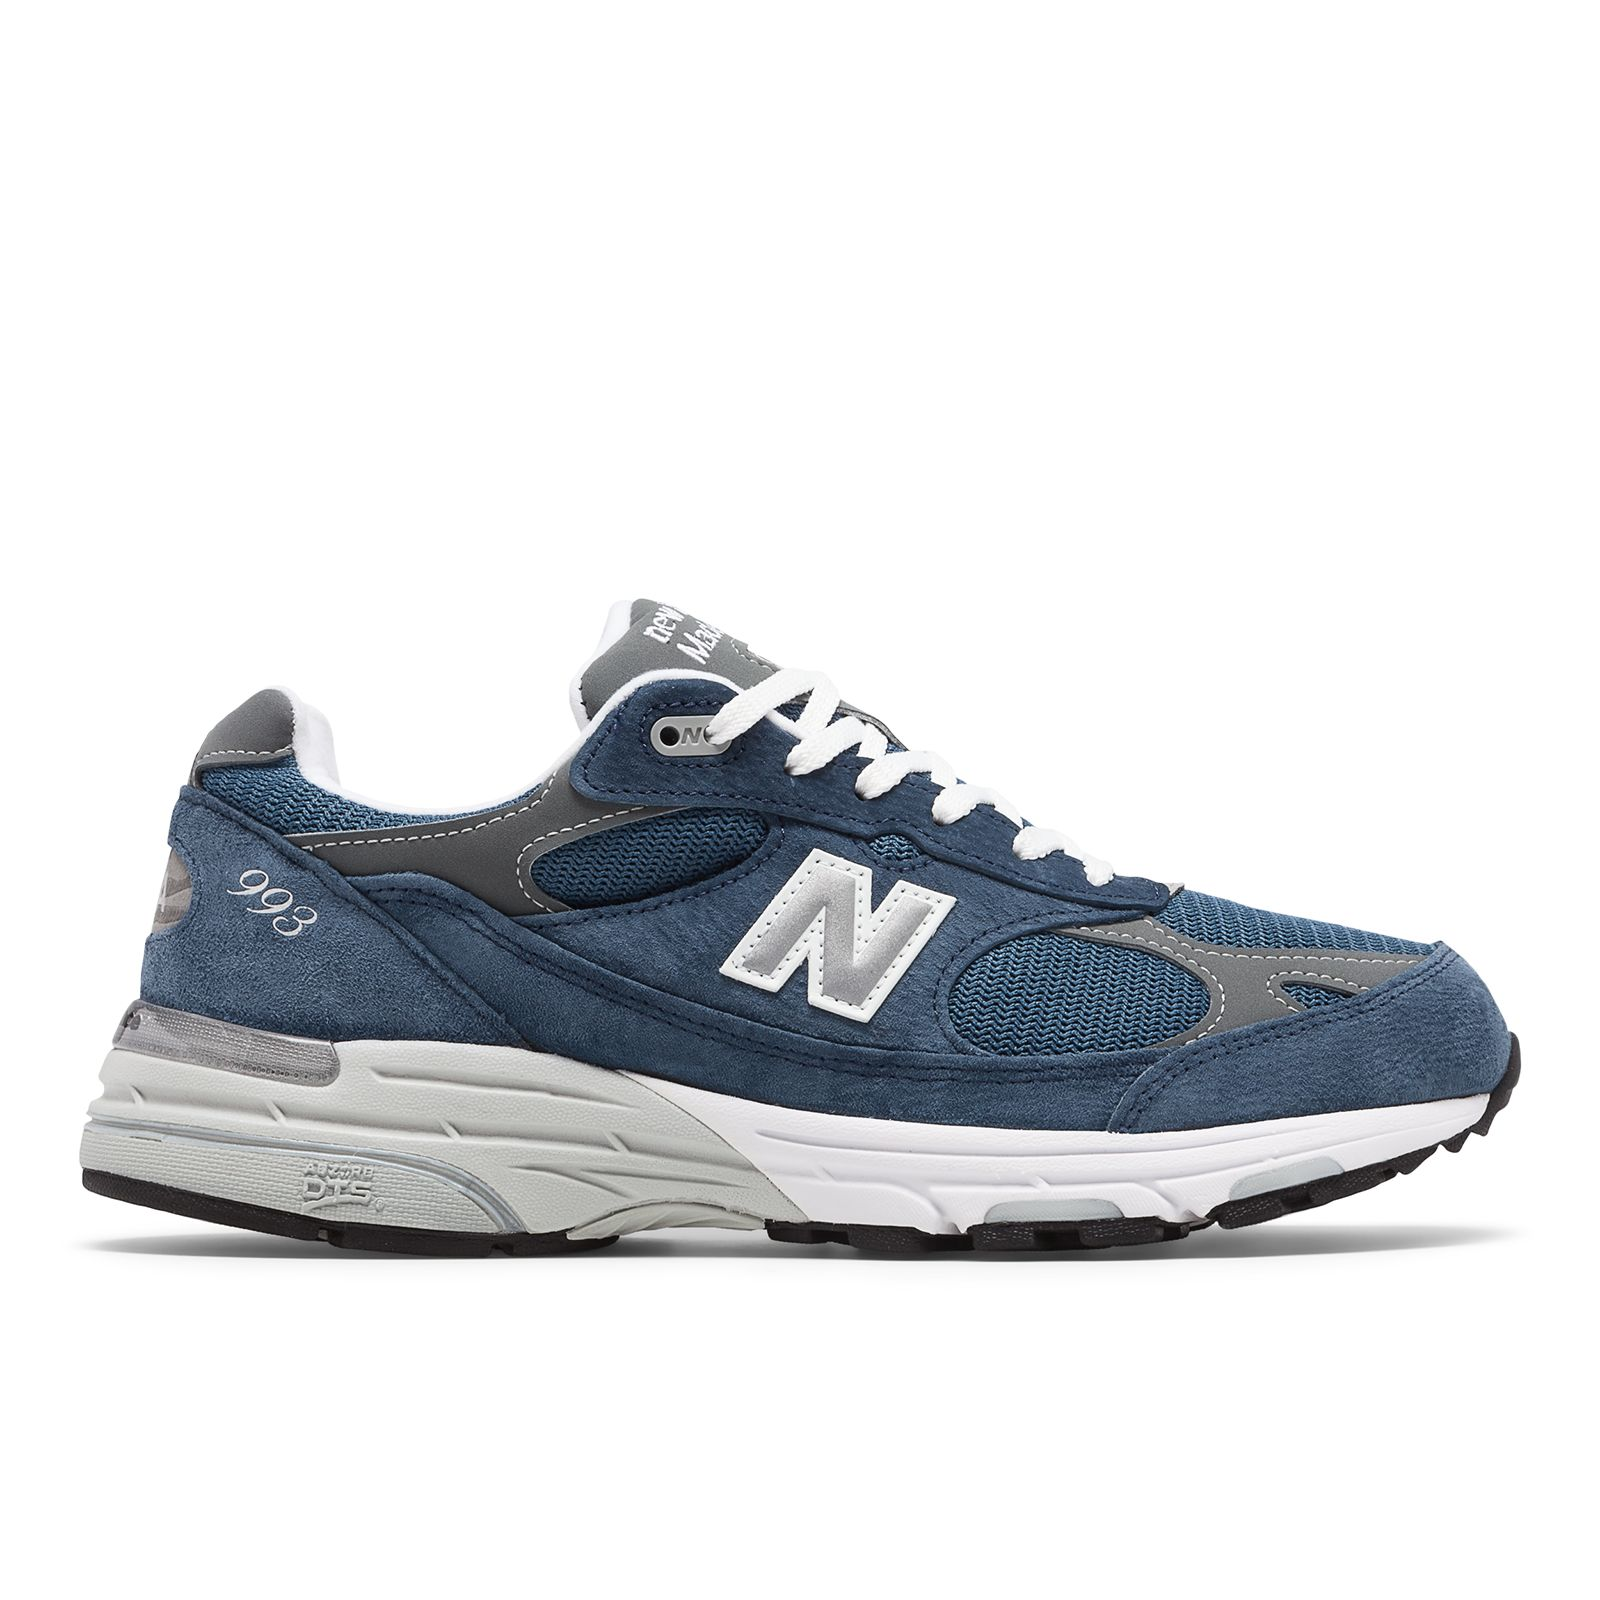 nouveau style b2f51 55bad Details about New Balance Men's Classic 993 Running Shoes Blue